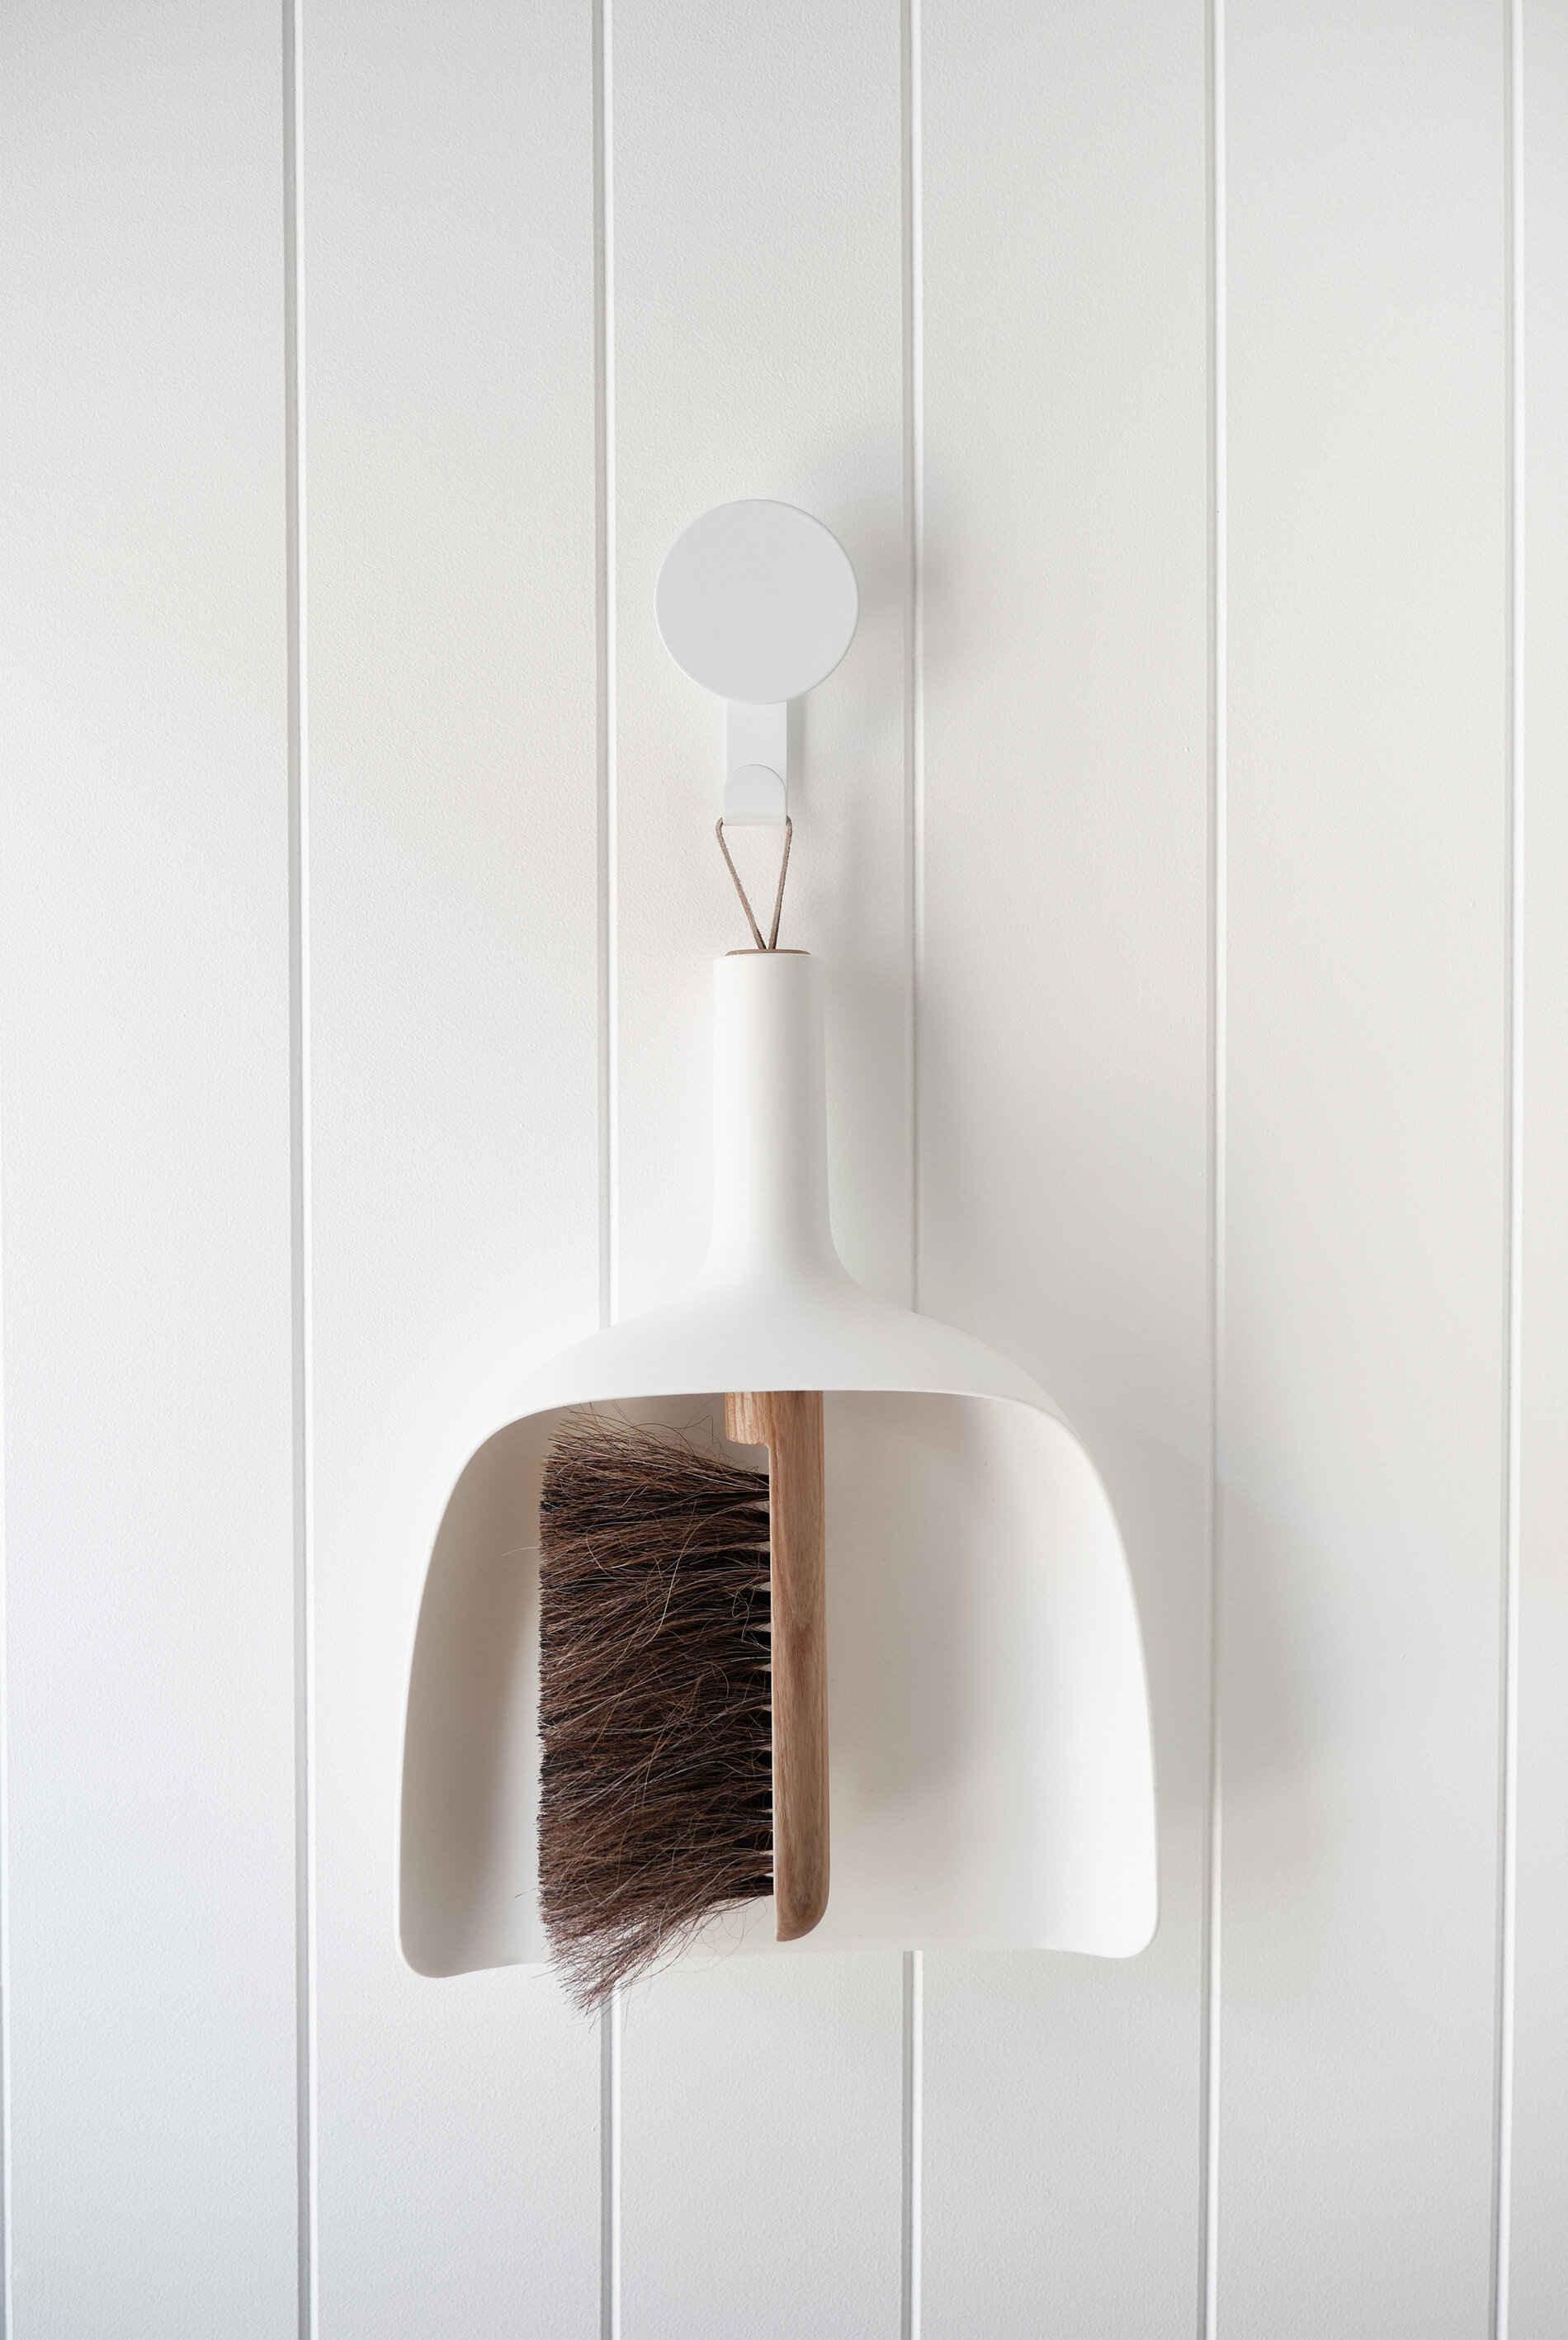 EasyCraft's EasyVJ wall panels ,  Design By Them's 'Dial' hanger with hook ,  Menu dustpan and brush from designstuff